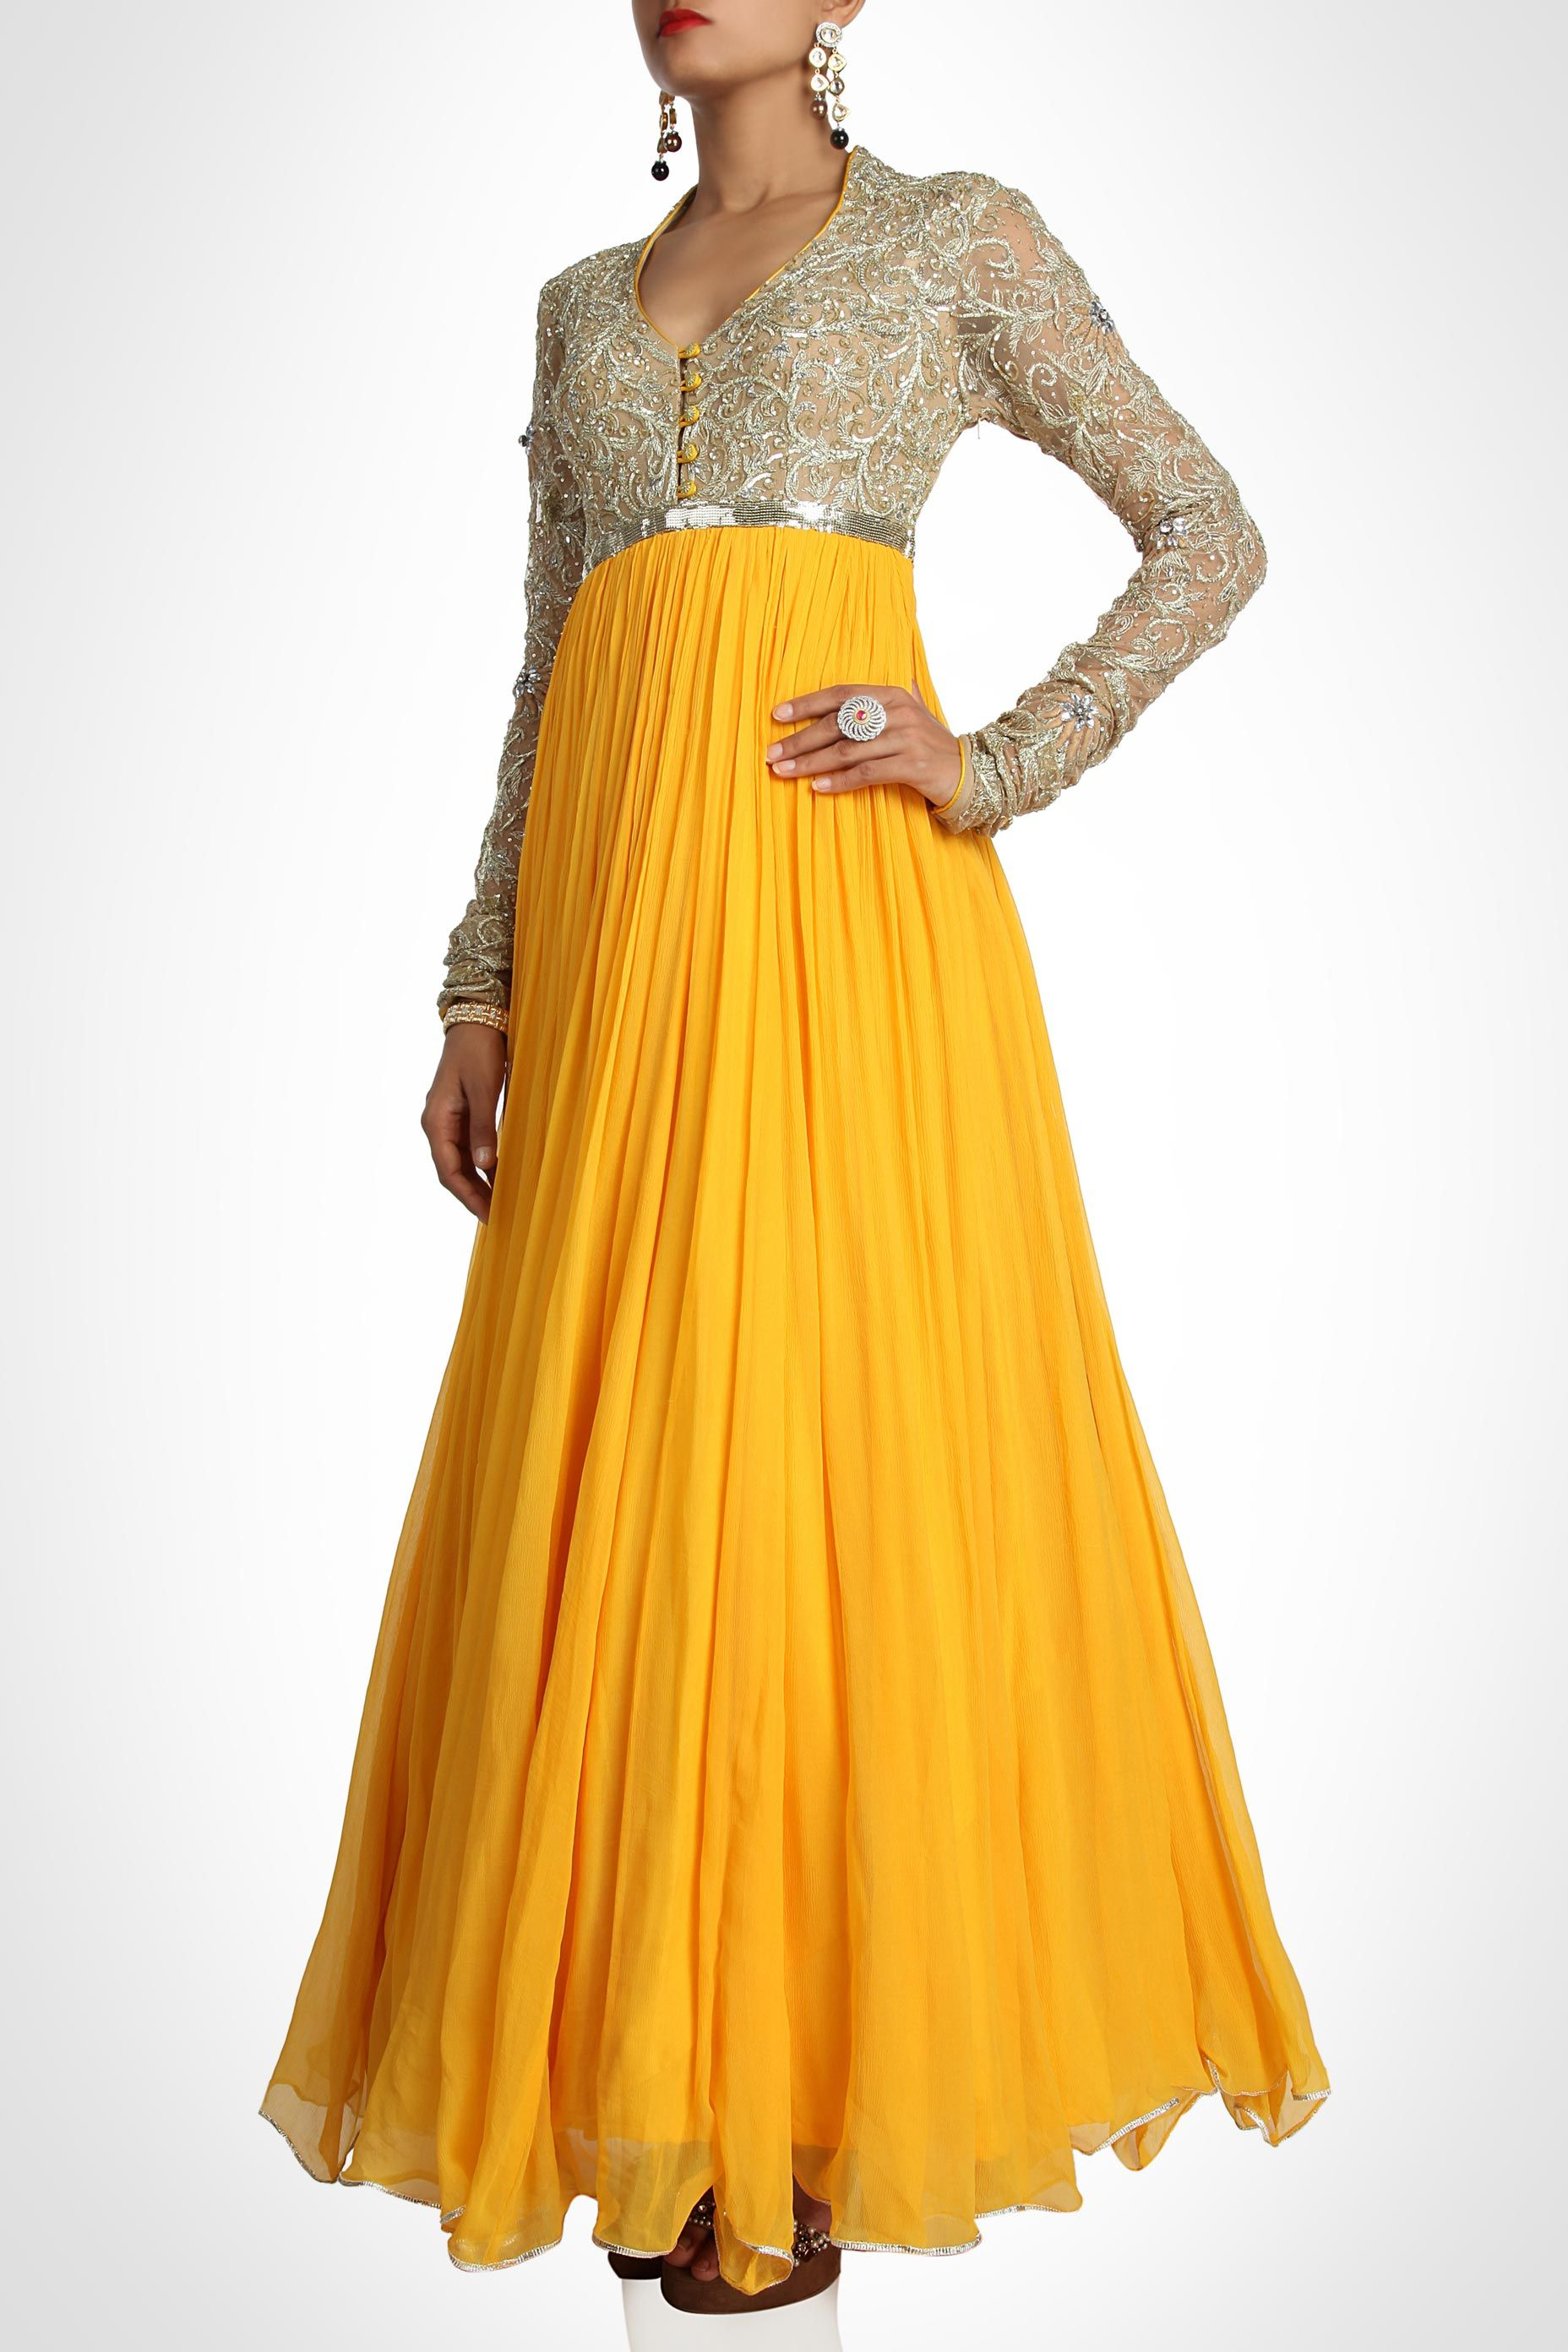 something to wear to a friend\'s wedding! Pam Mehta collection ...